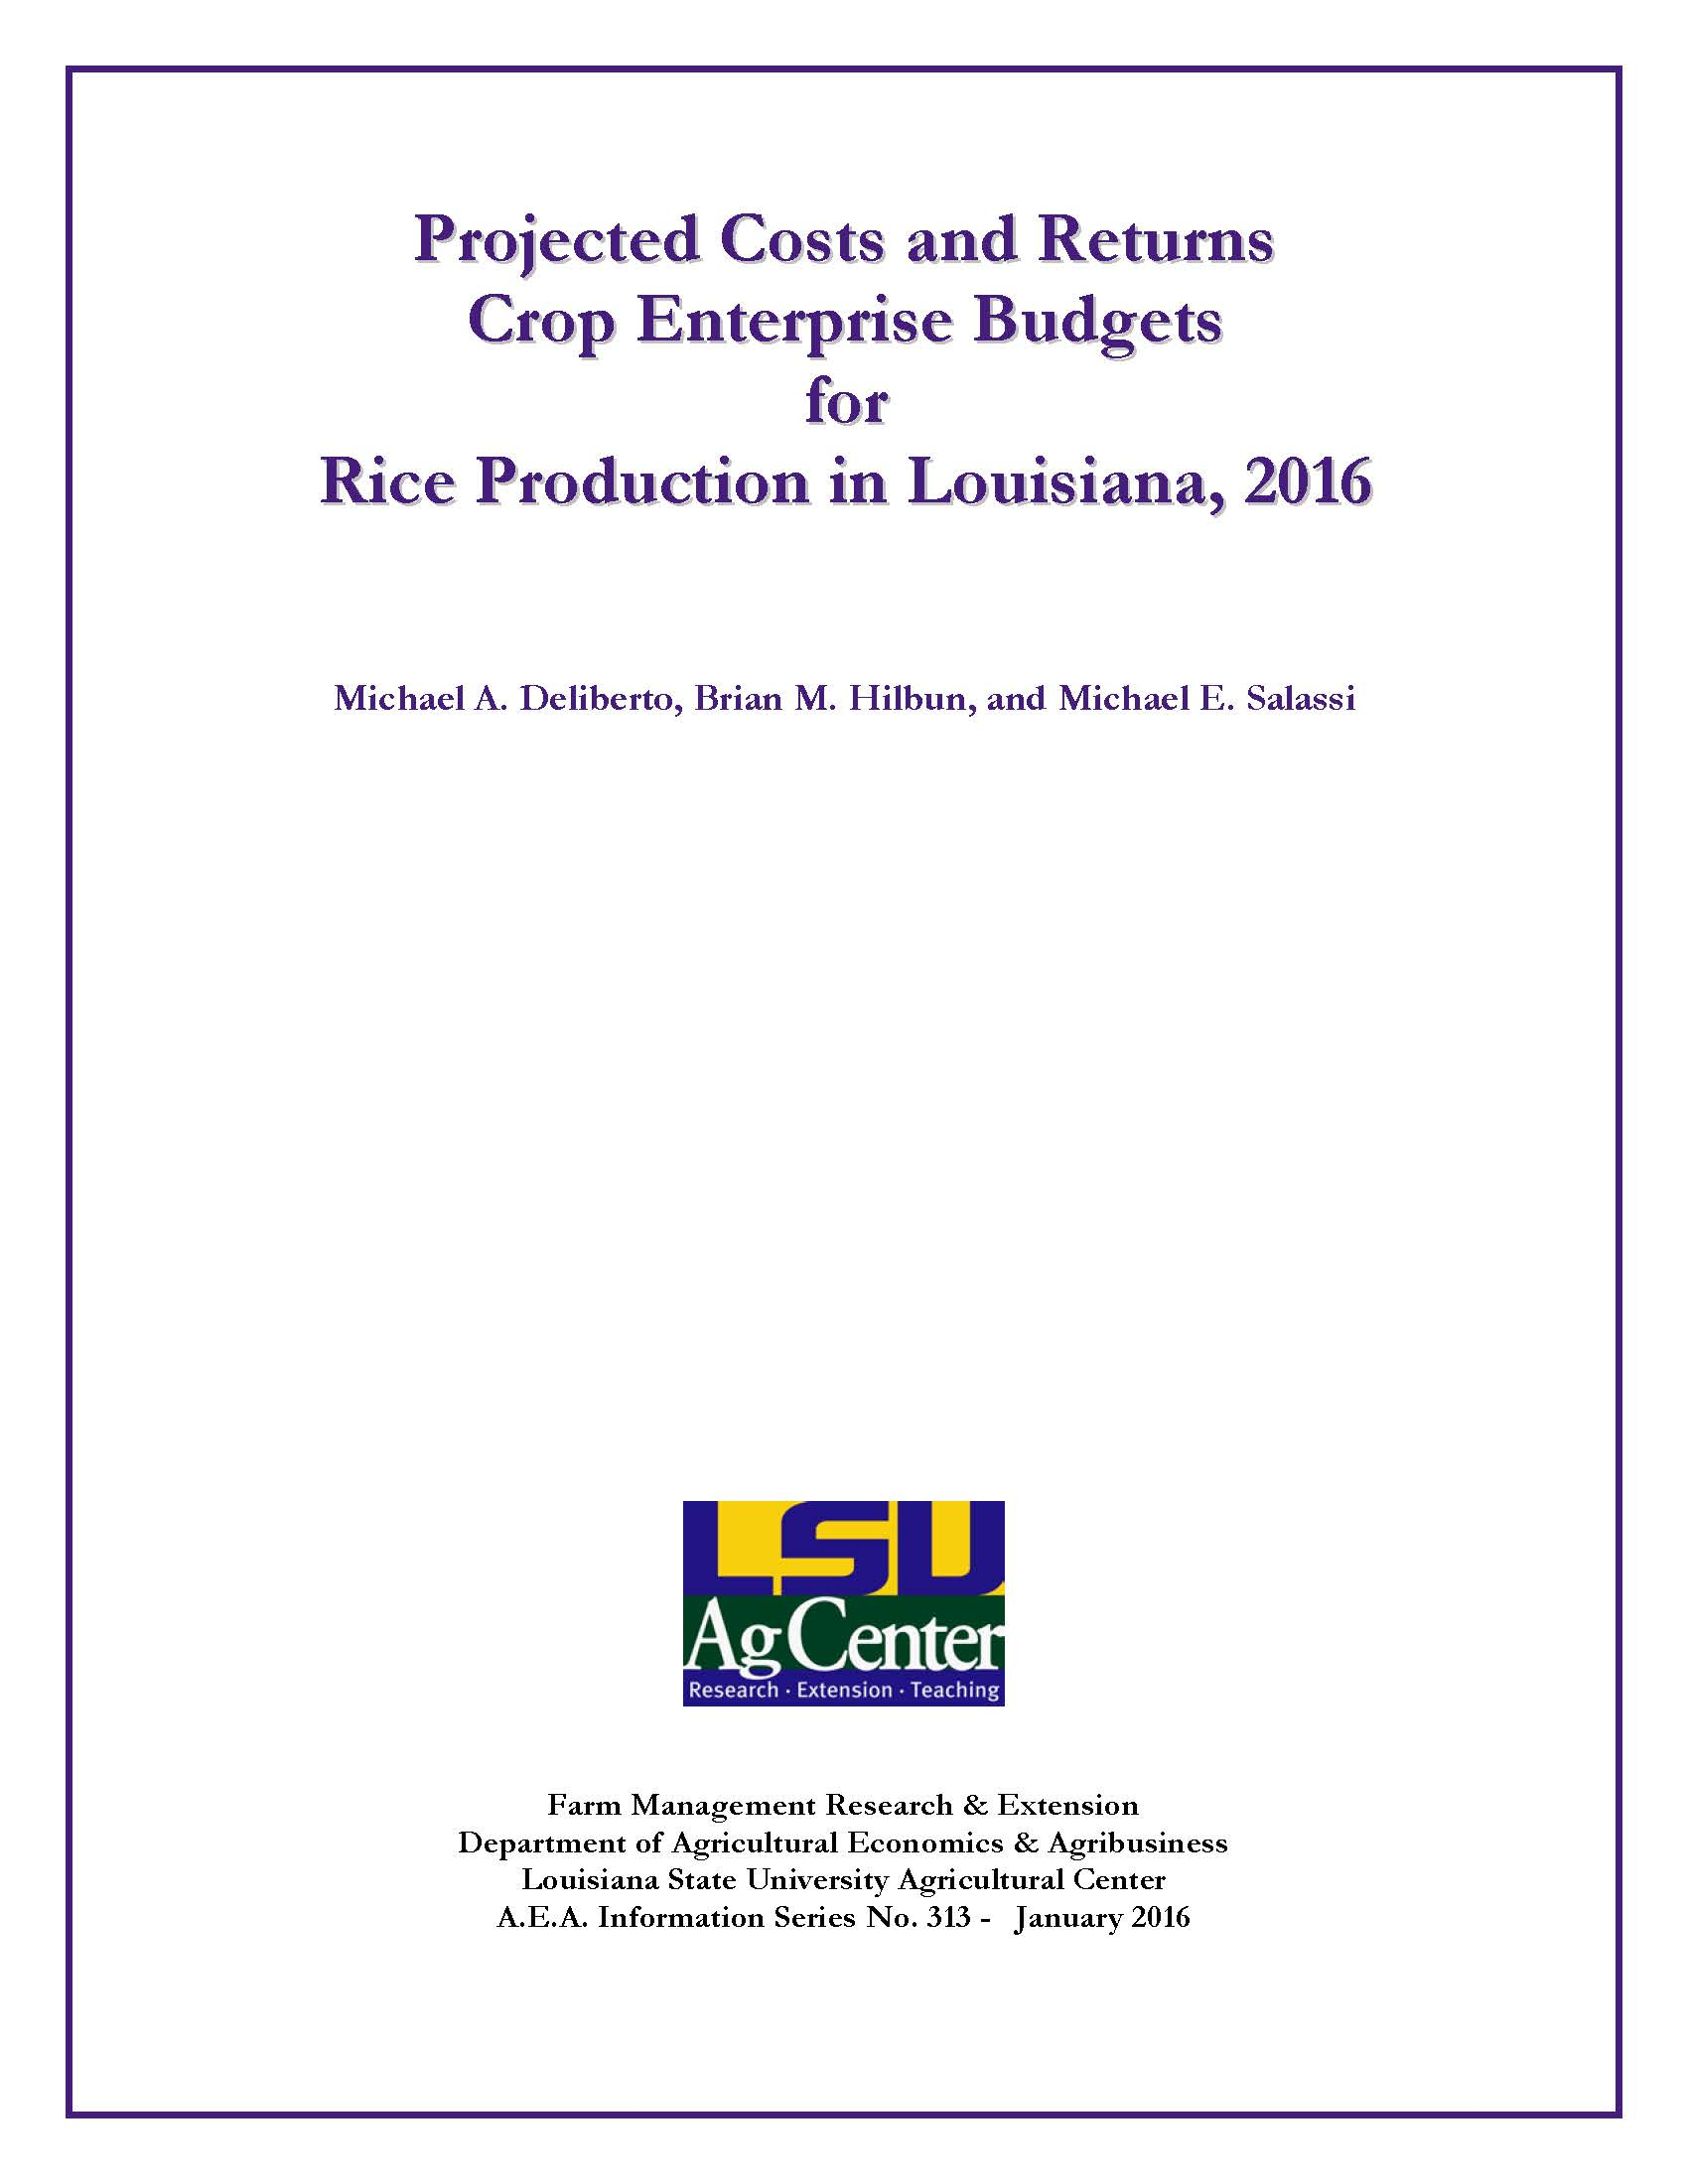 2016 Projected Costs and Returns Crop Enterprise Budgets for Rice Production in Louisiana